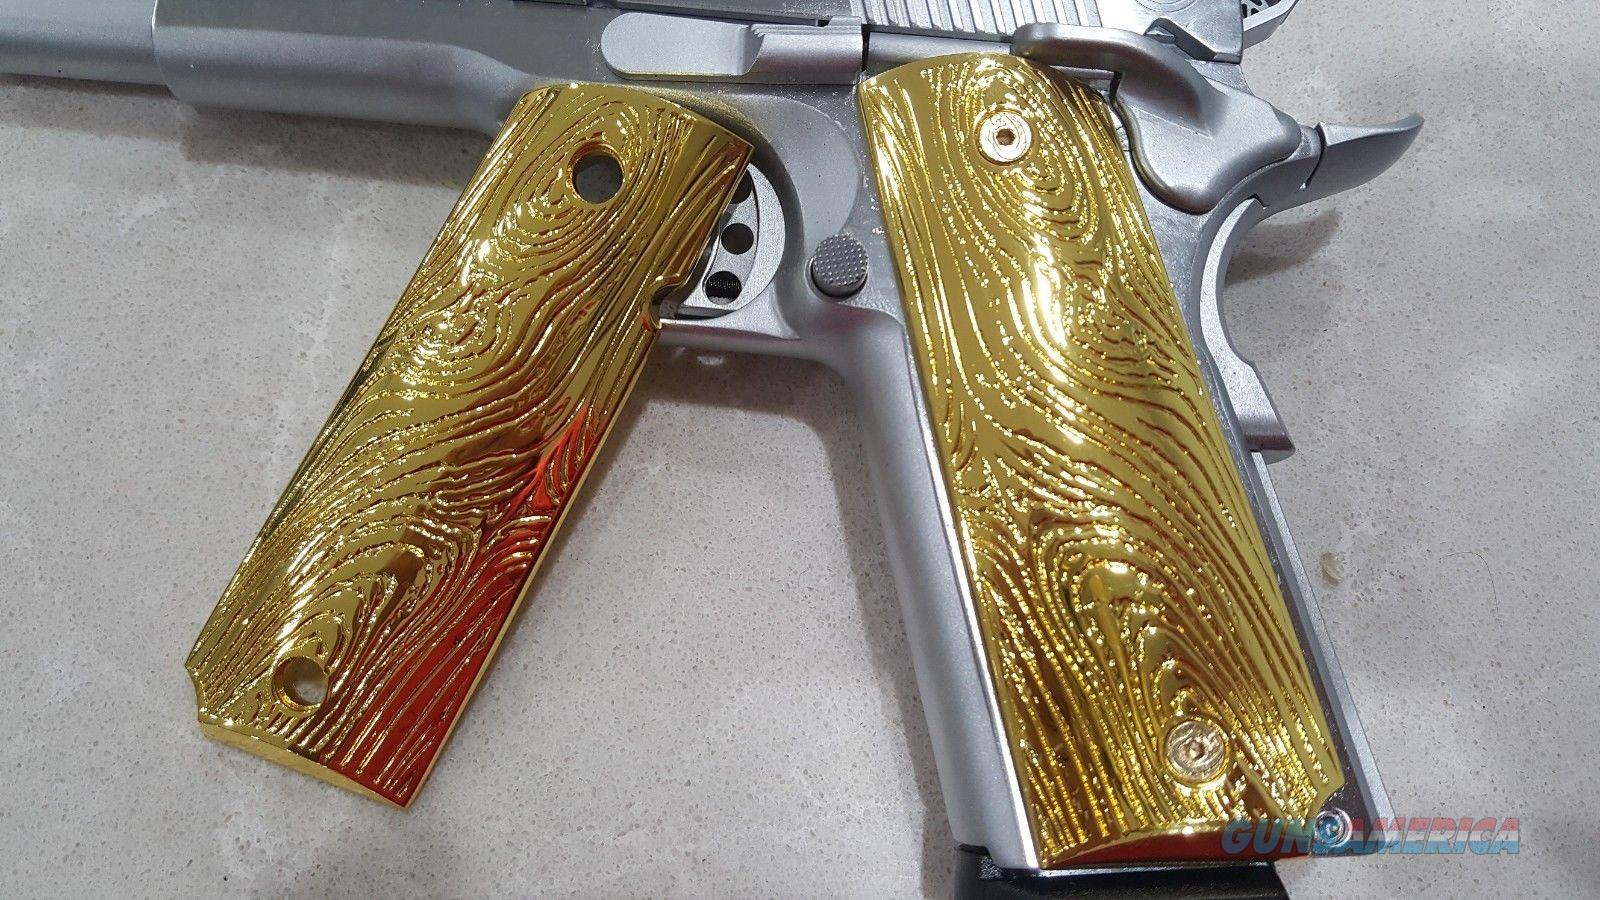 FIT ALL 1911 COLT GRIPS FULL SIZE GOVERNMENT METAL Grips Scroll GRIP GOLD Plated  Non-Guns > Gun Parts > 1911